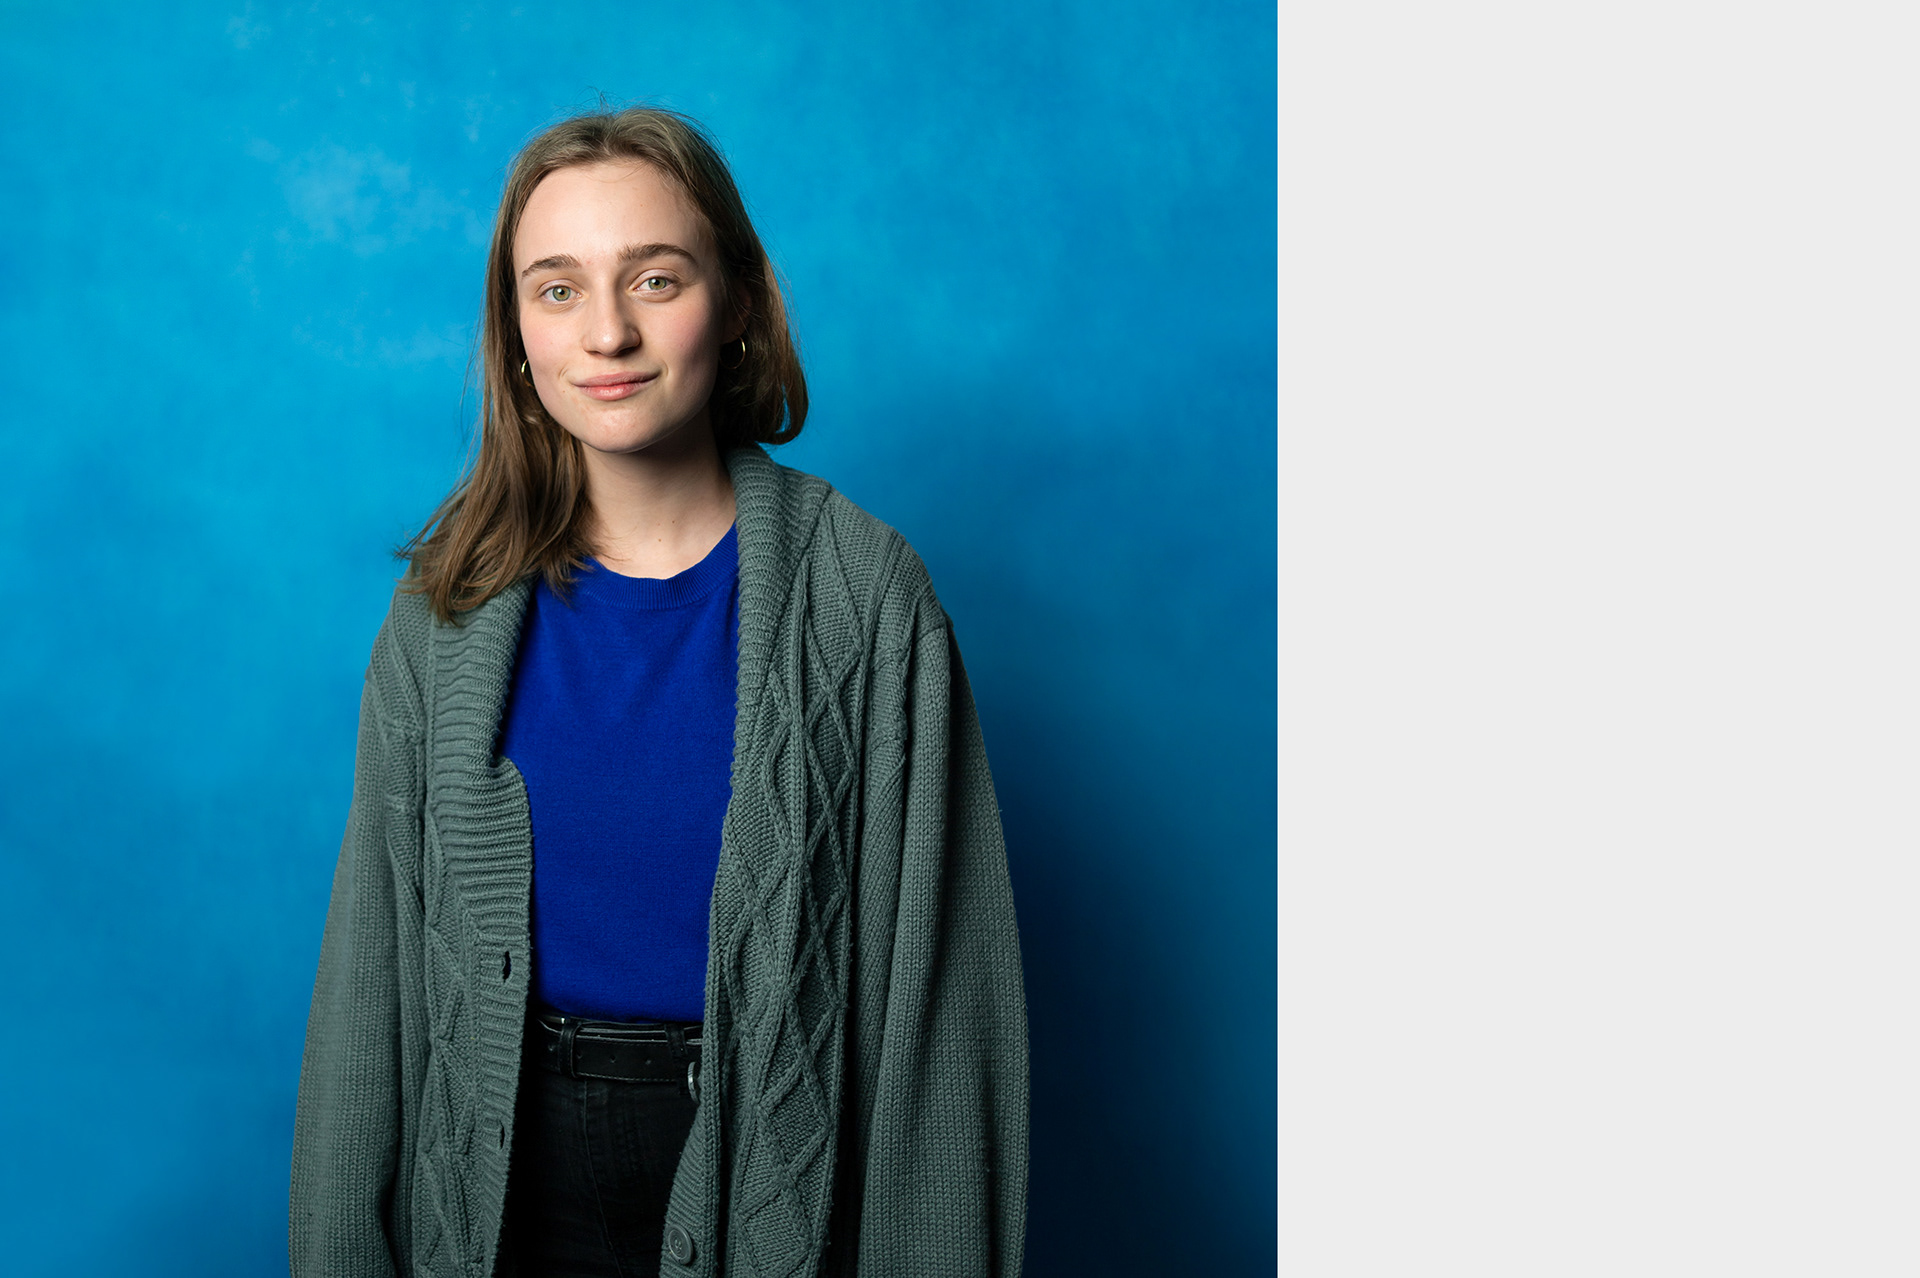 Adéla, studio portrait of young female volunteer in front of blue background